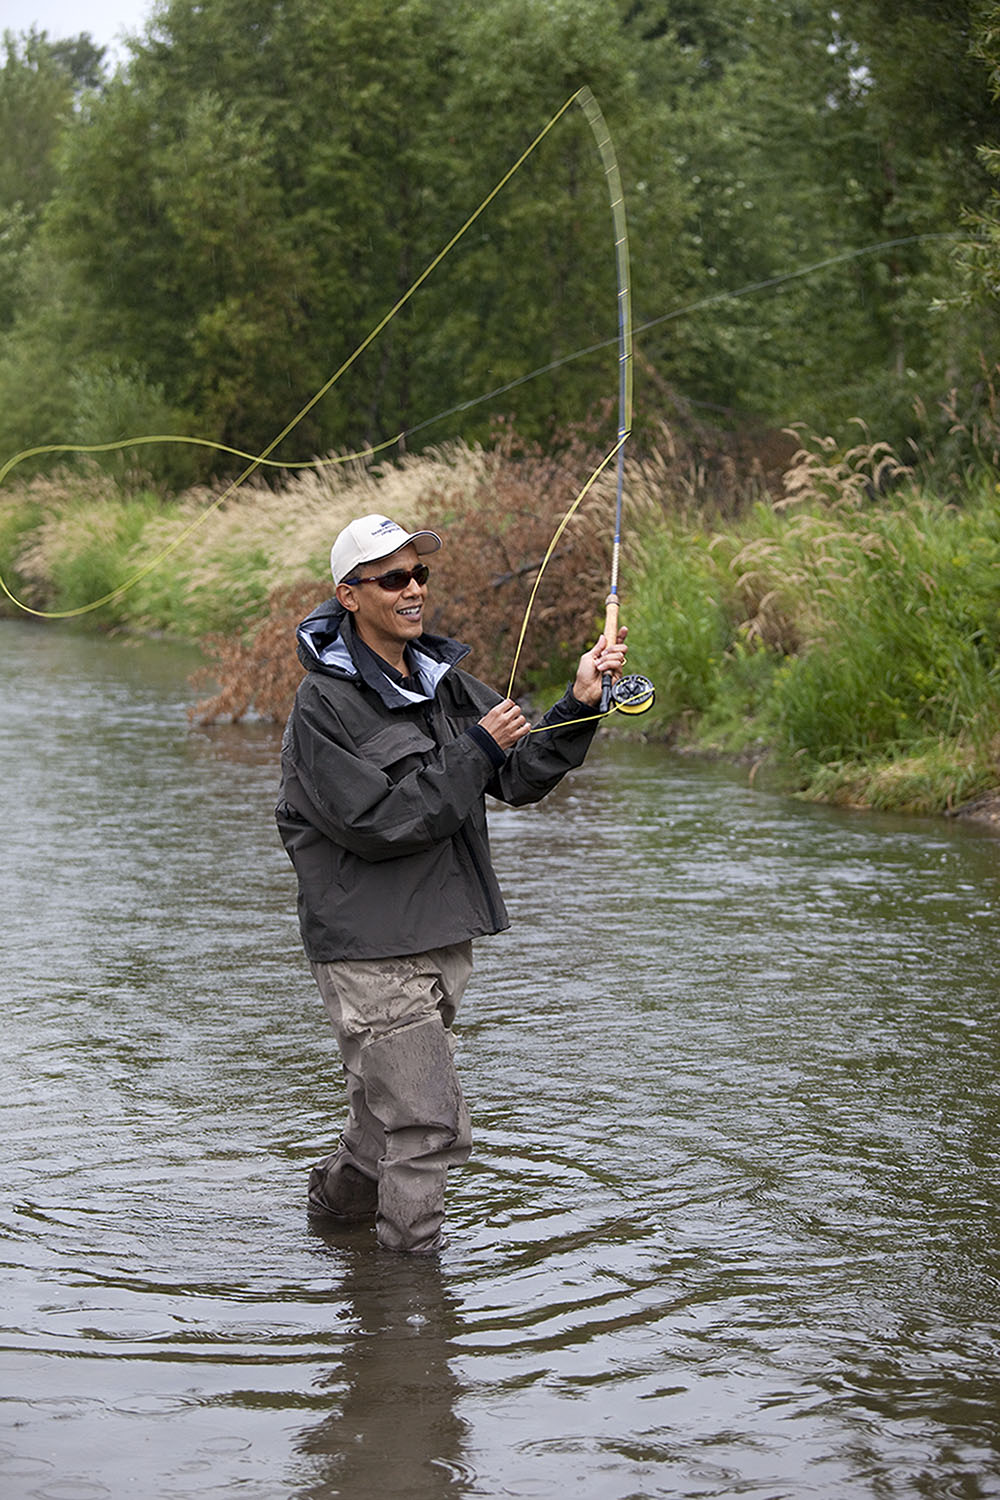 Montana, Aug. 14, 2009. Fly fishing near Bozeman. (Official White House photo by Pete Souza)